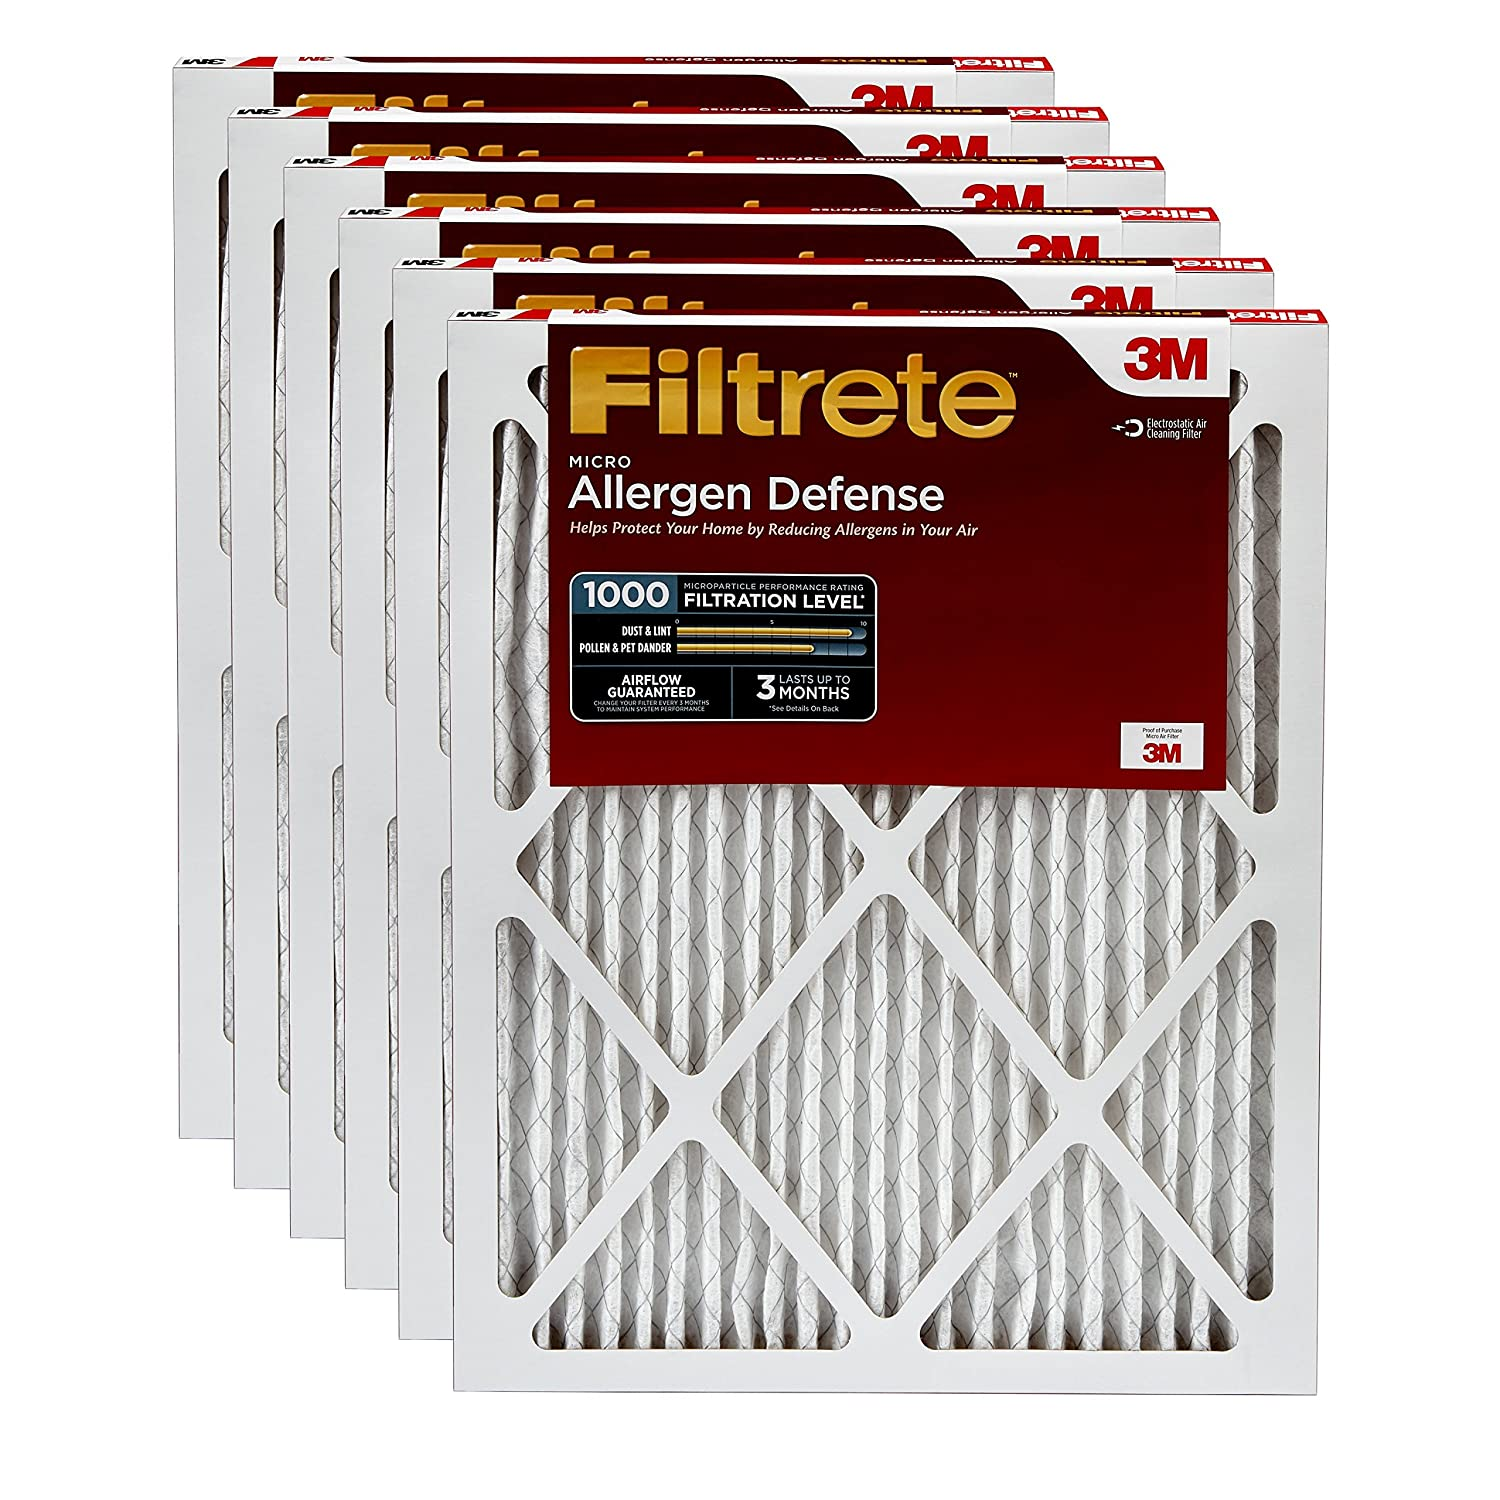 Filtrete MPR 1000 18x20x1 AC Furnace Air Filter, Micro Allergen Defense, 6-Pack